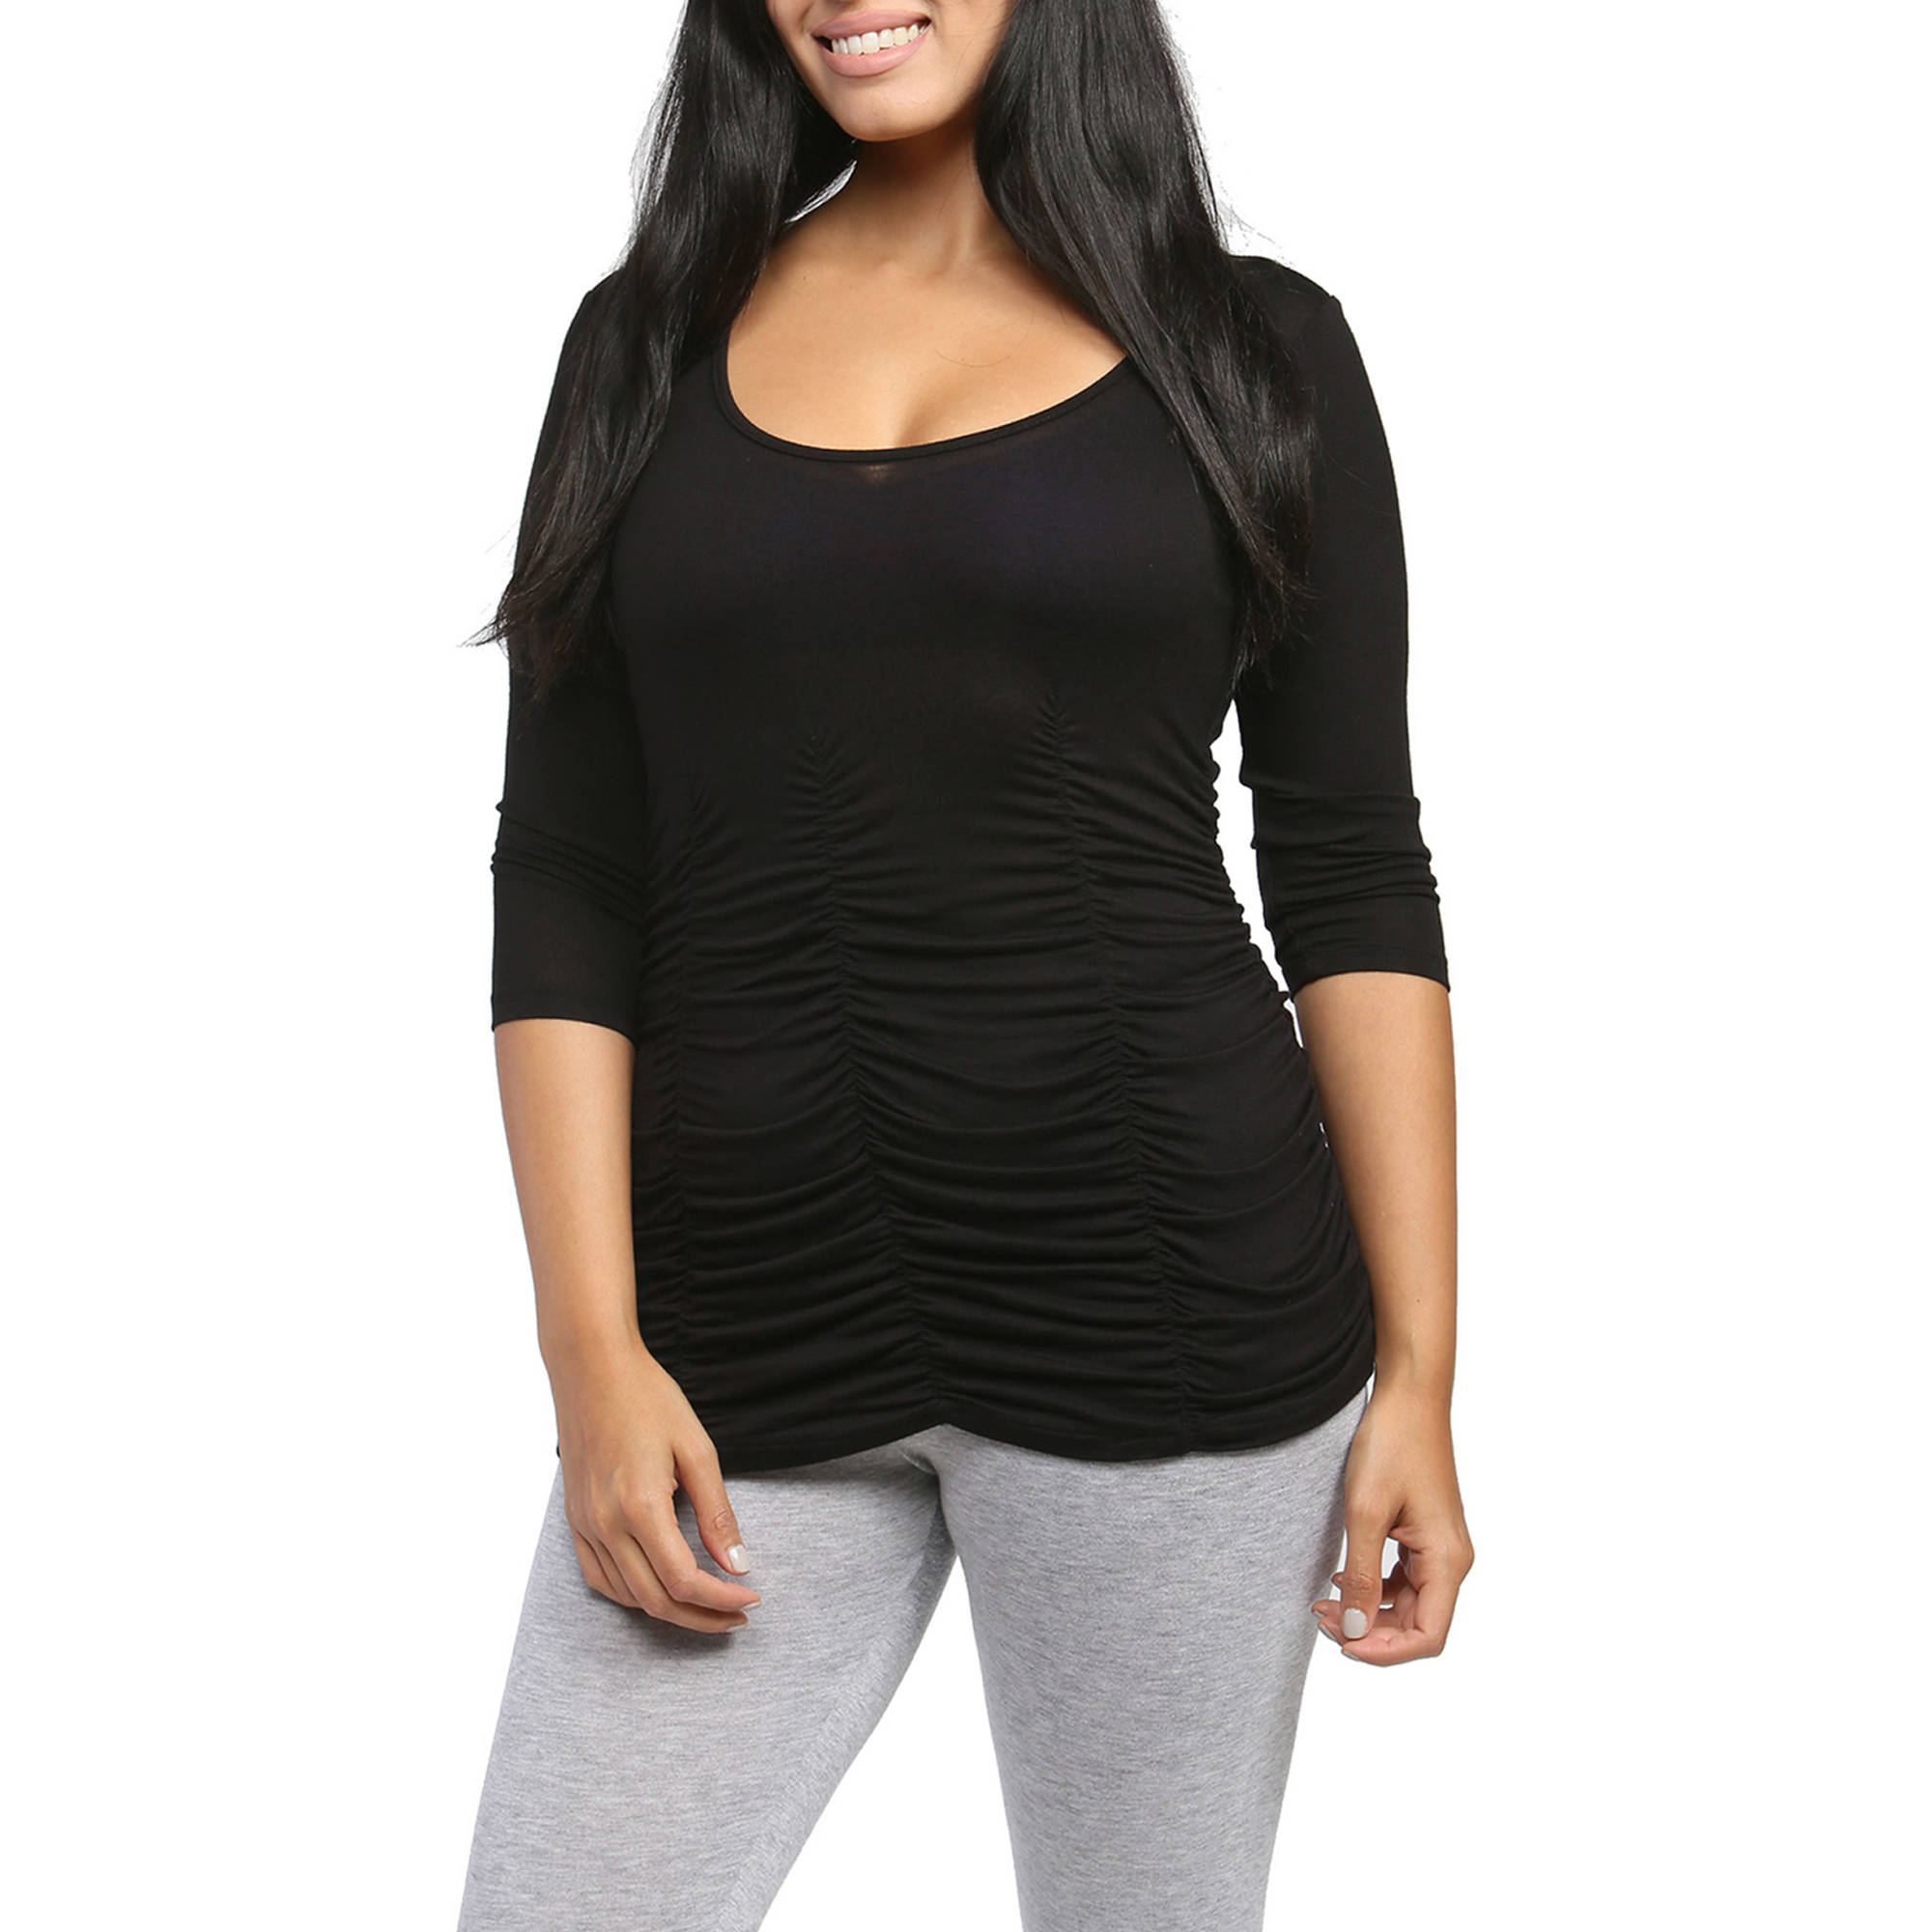 24/7 Comfort Apparel Women's 3/4 Sleeve Shirred Top